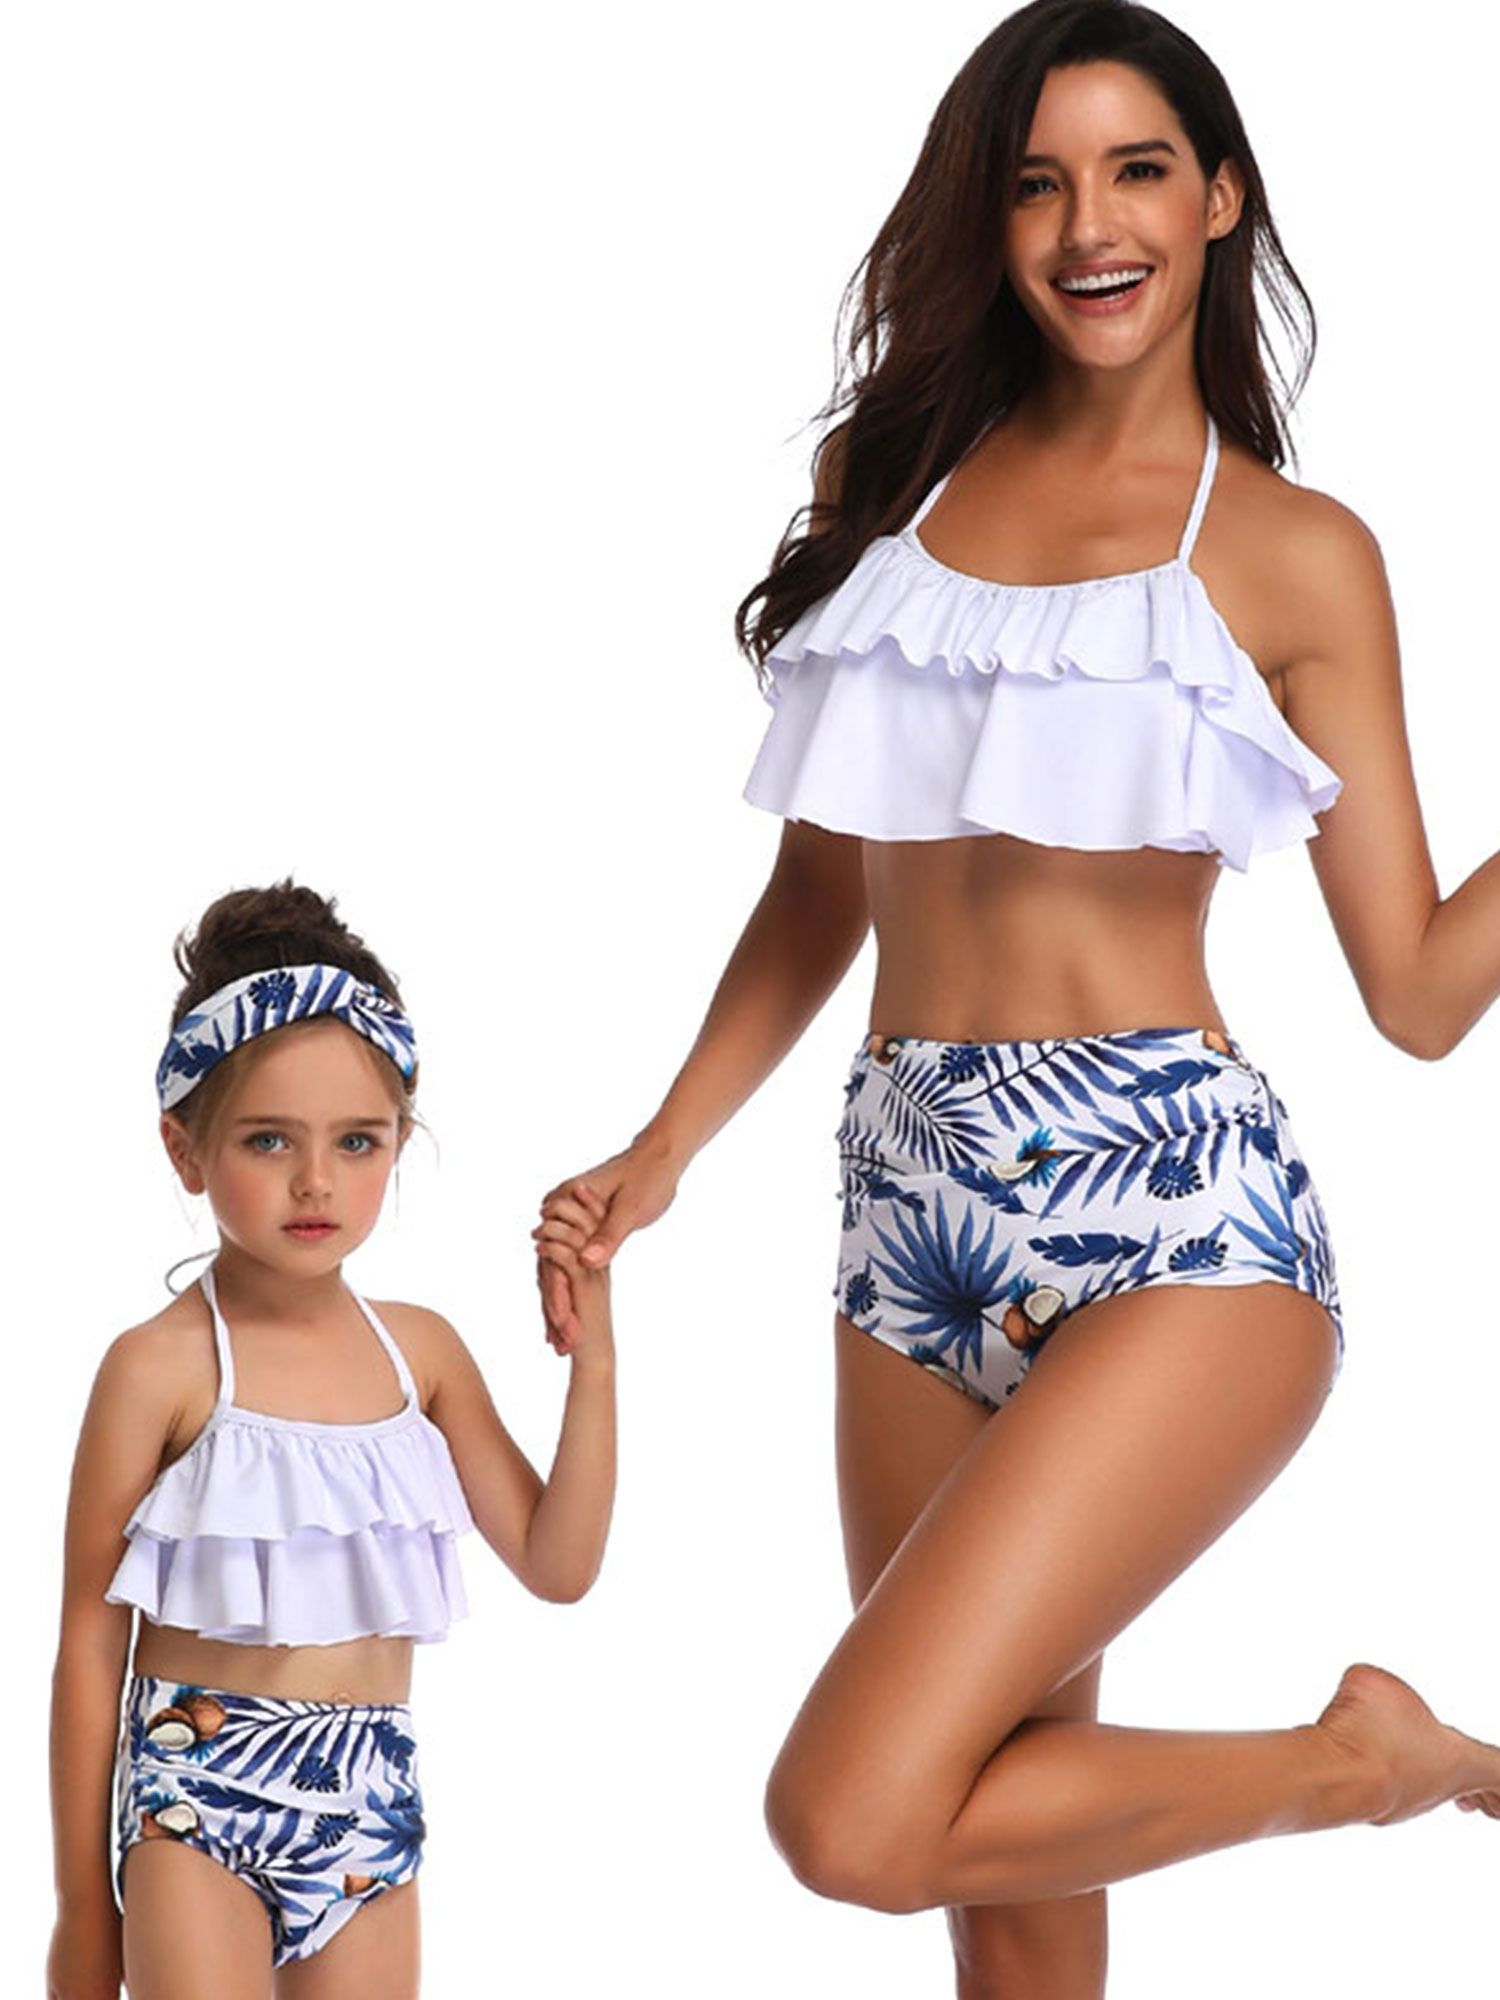 ee9a997c92f Family Matching Swimwear Mother Daughter Women Kids Girl Bikini Set Beachwear  Bathing Suit Swimsuits Beachwear Push-Up Bra Bandage #Ad #Women,  #Sponsored, ...